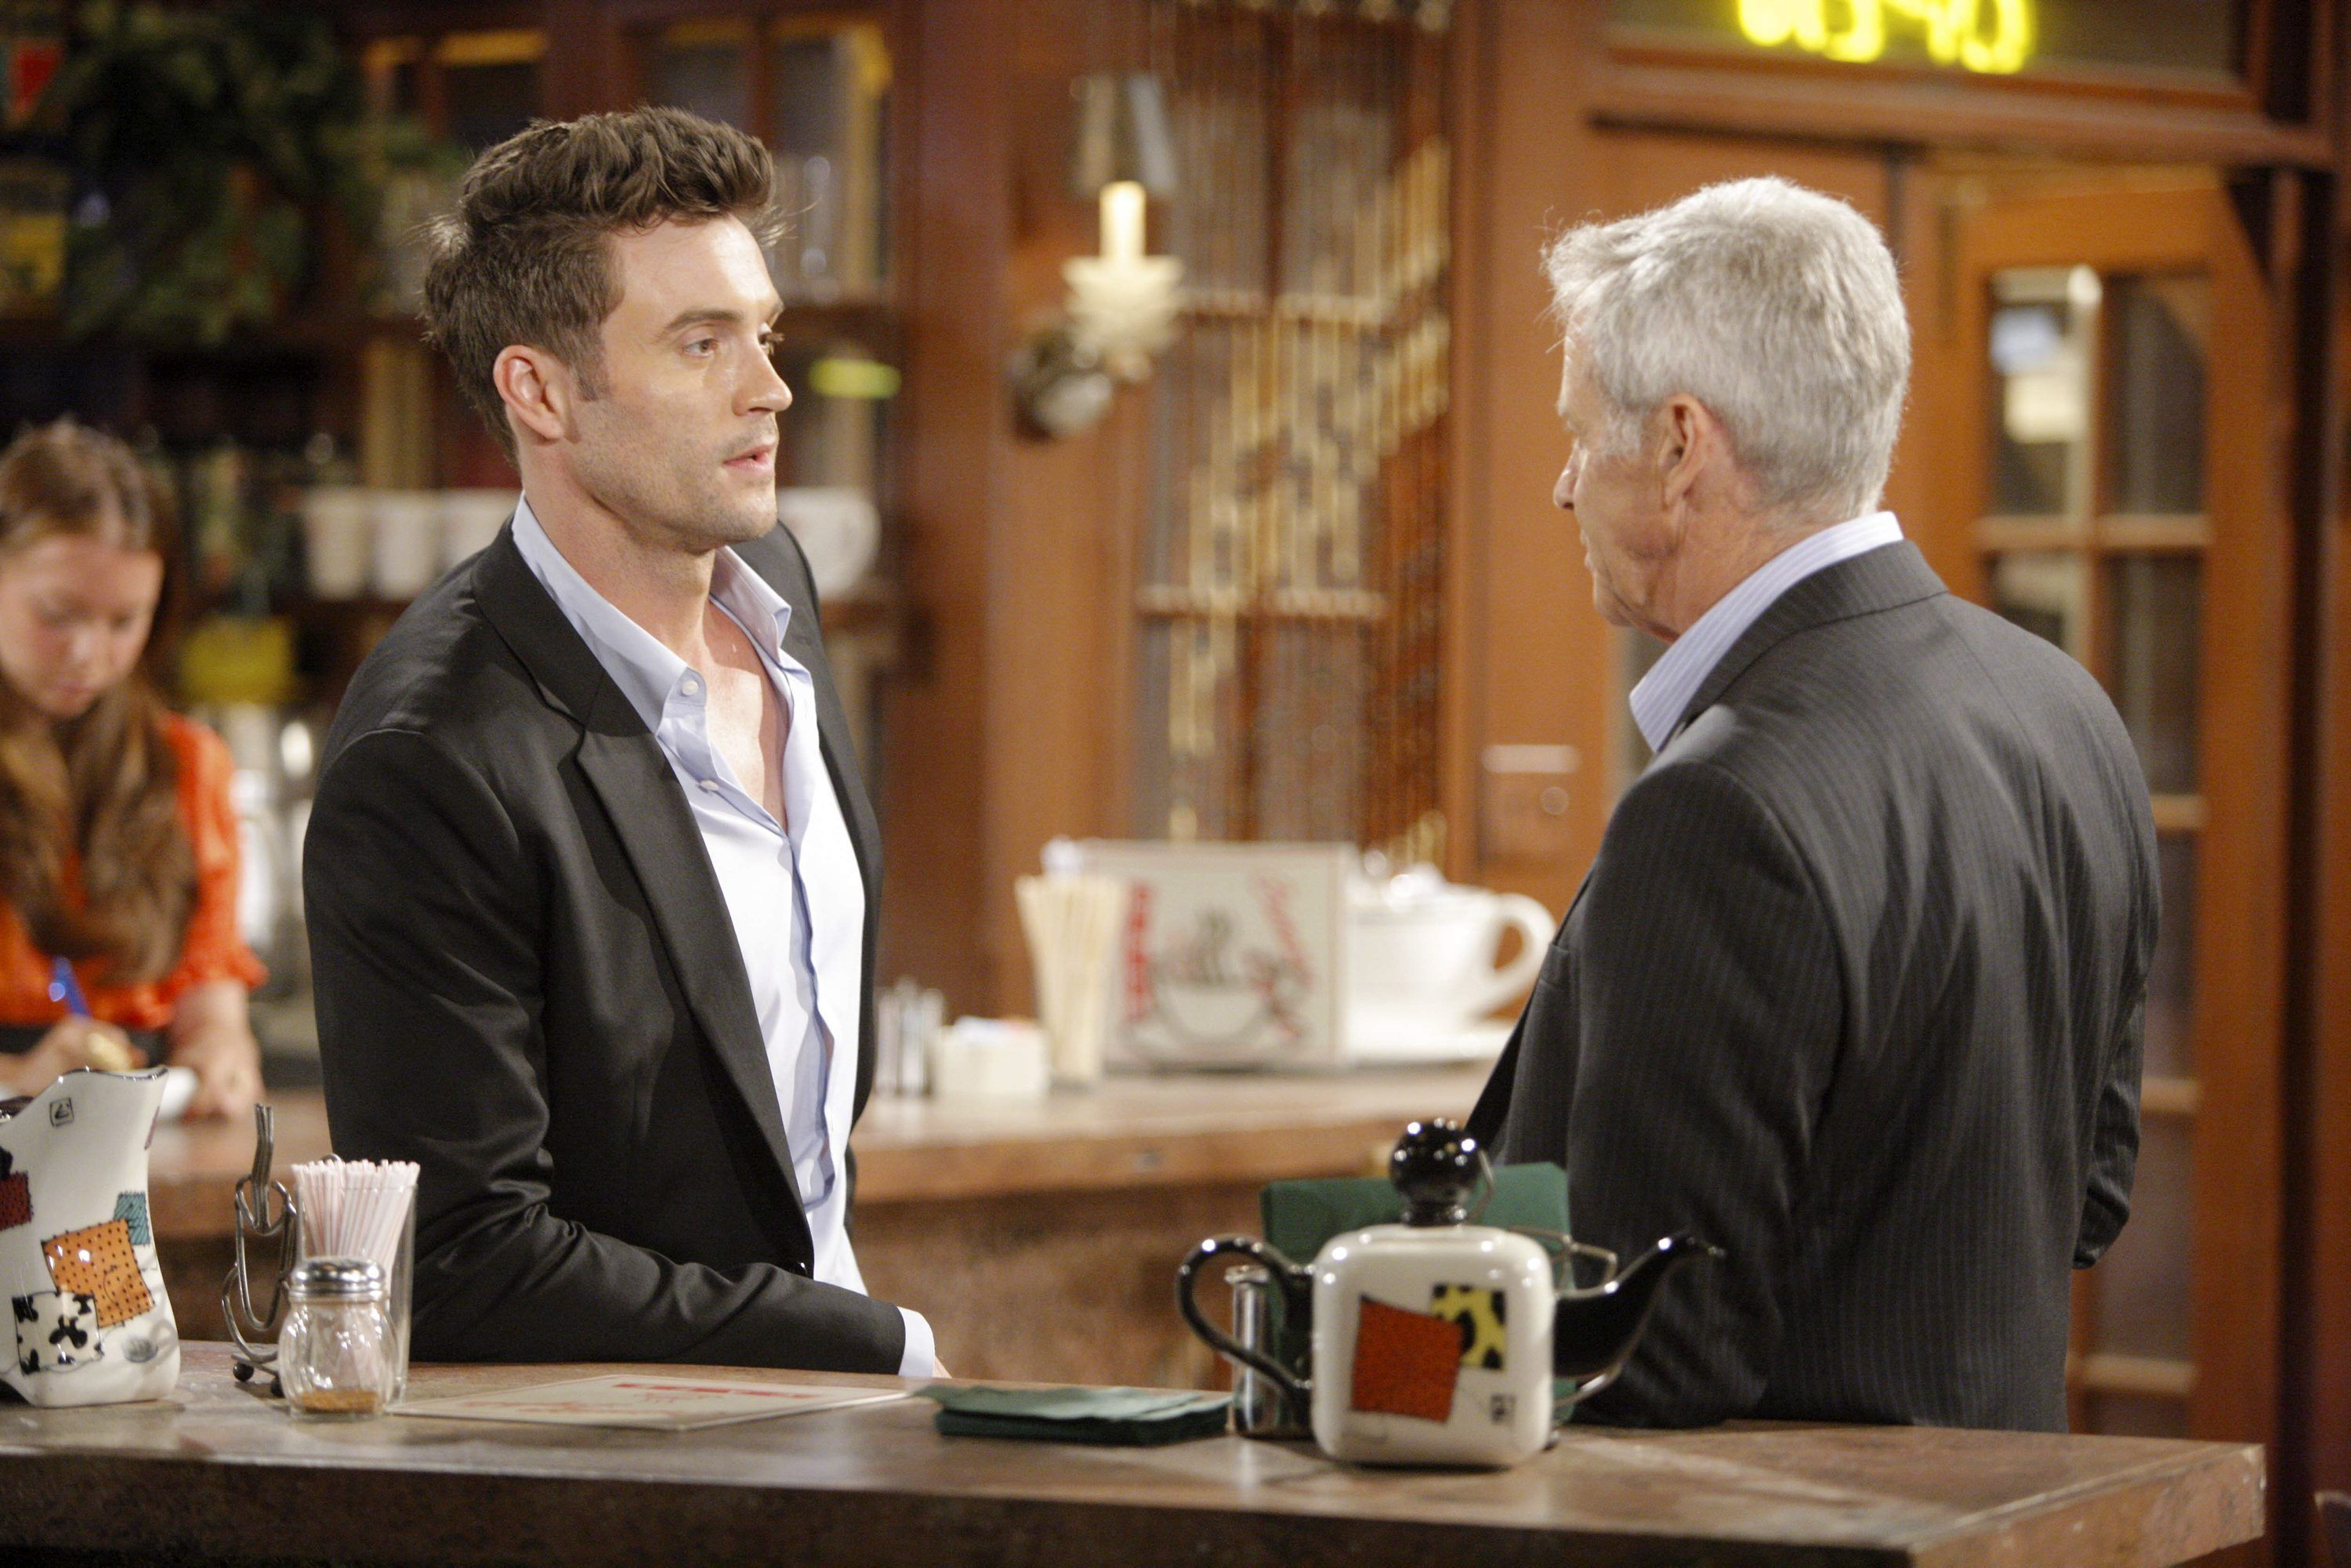 "Daniel Goddard, Tristan Rogers""The Young and the Restless"" Set CBS television CityLos Angeles07/14/11©sean smith/jpistudios.com310-657-9661Episode # 9719U.S. Airdate 08/18/11"